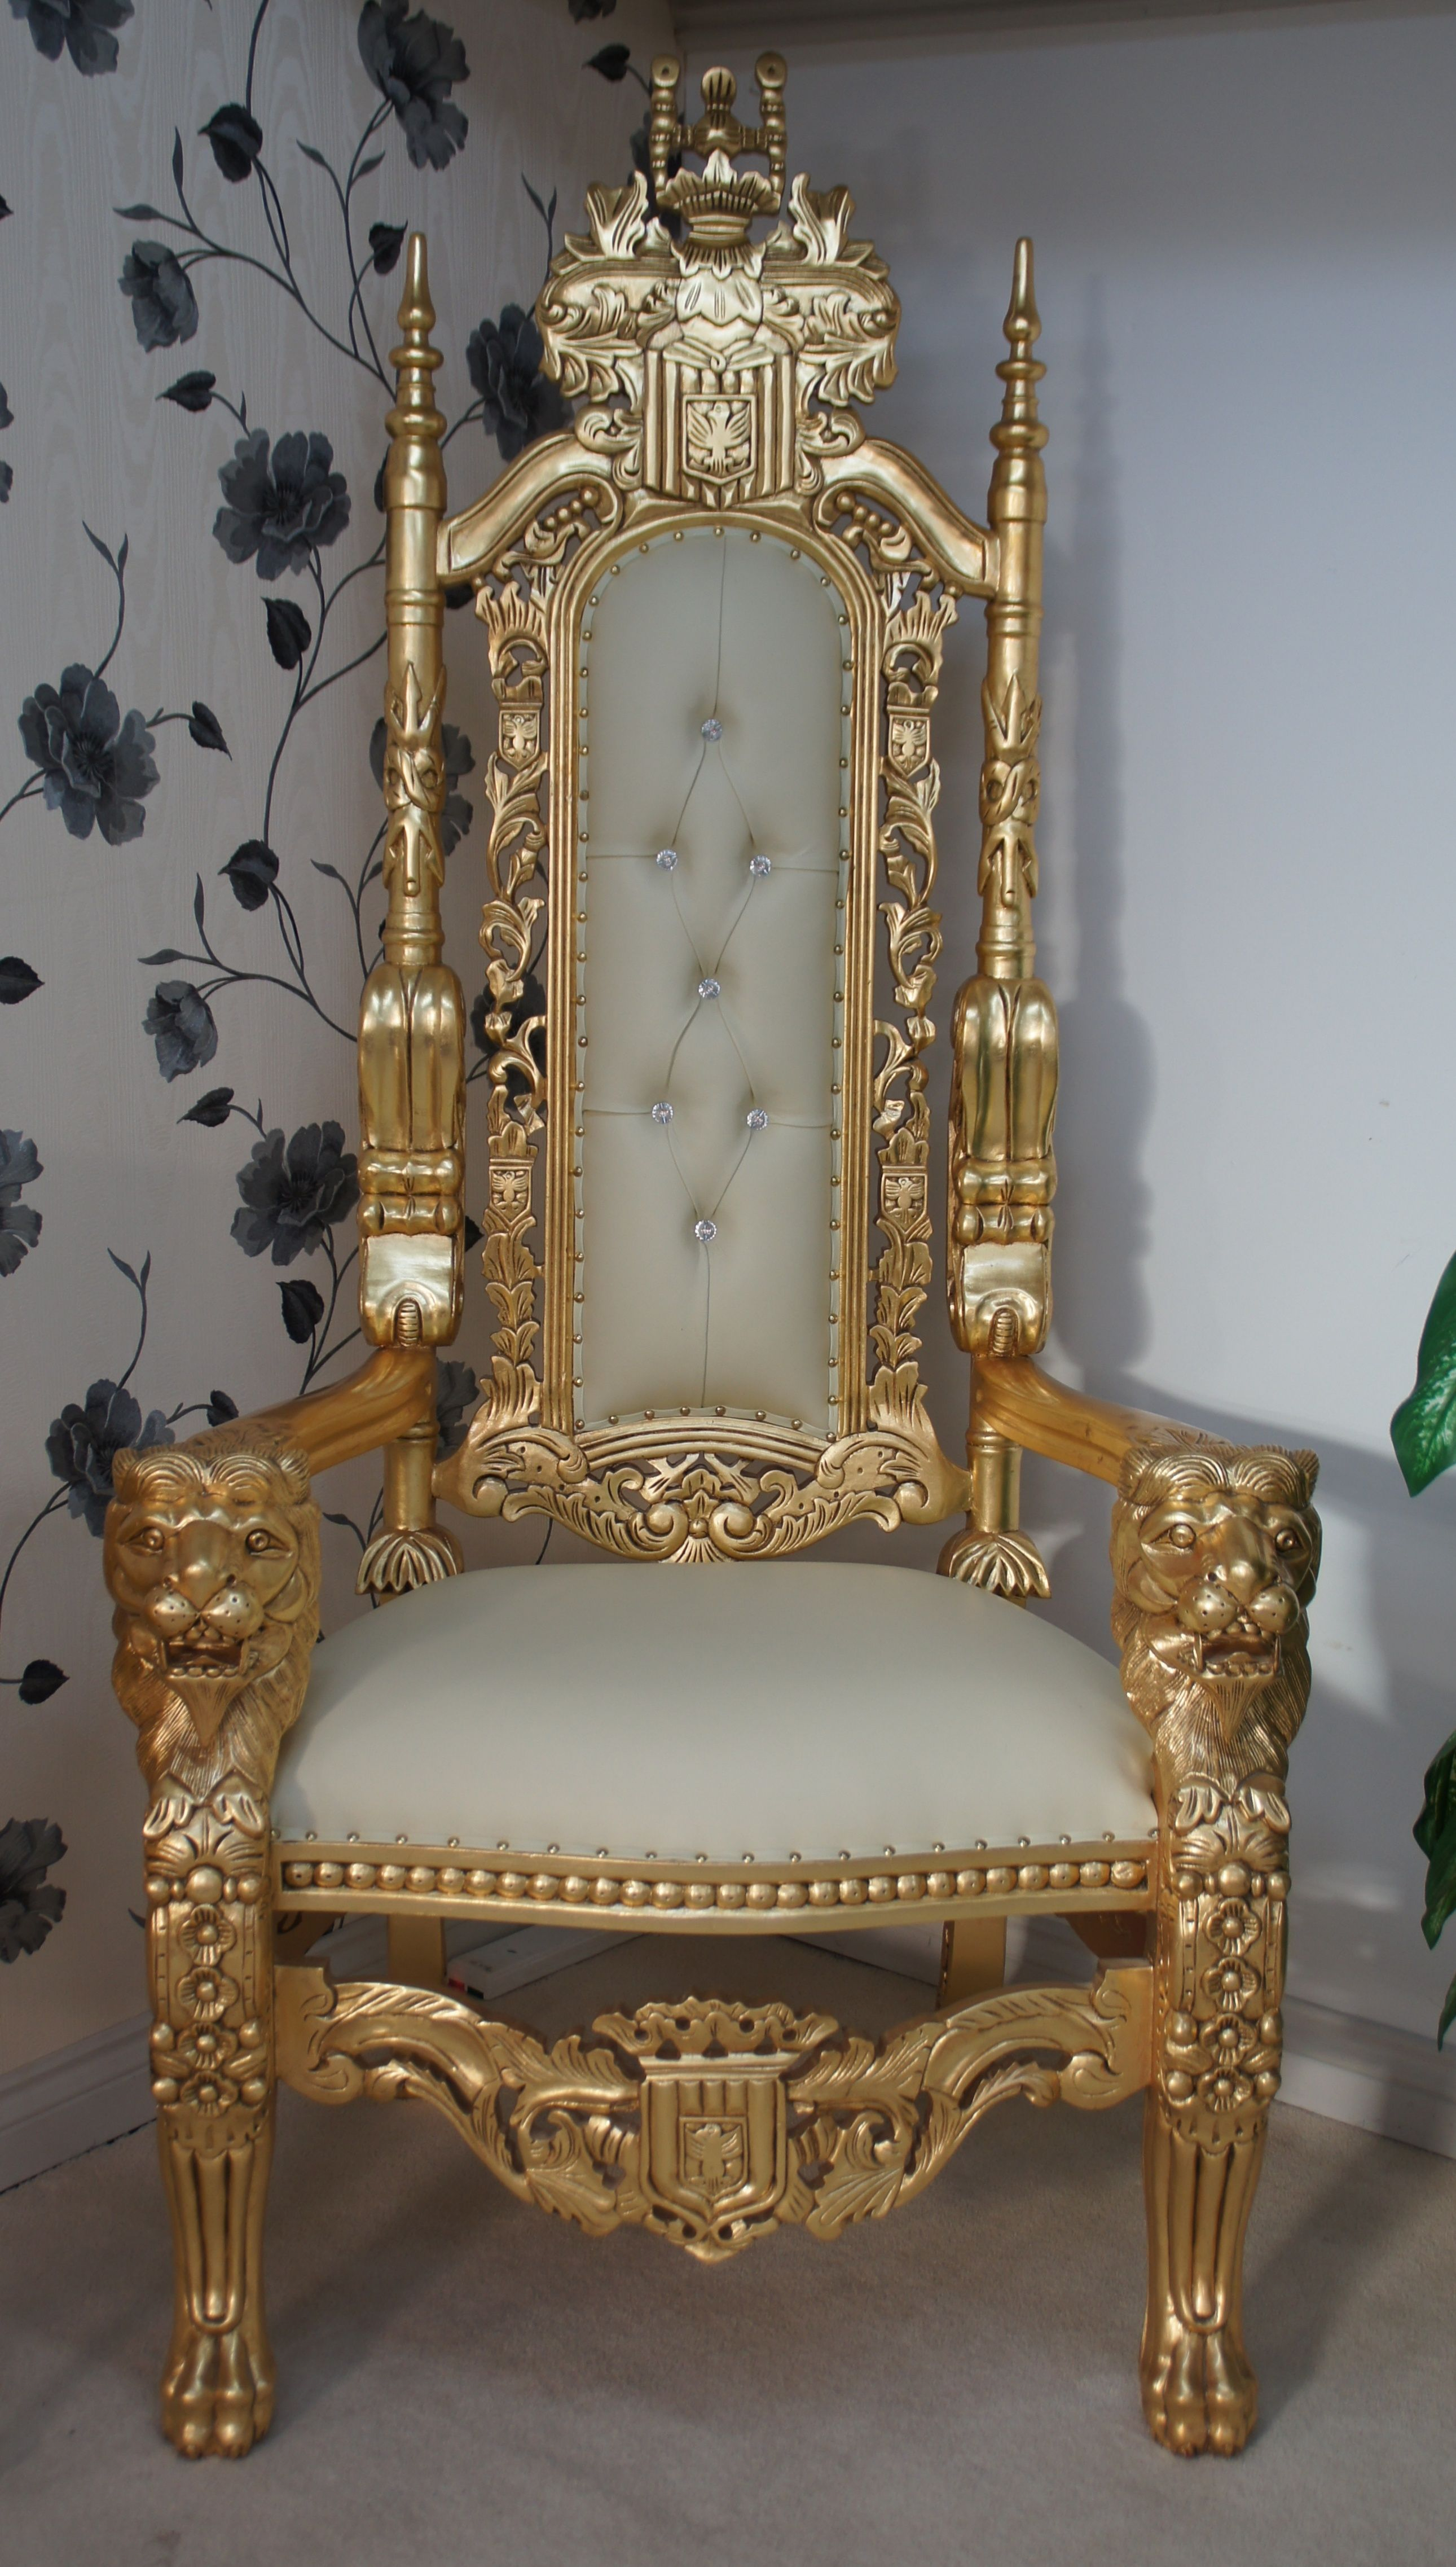 Lion Throne Chair In Gold Leaf Cream Easiclean Faux Leather CRYSTAL Buttons.1  (2581×4549)